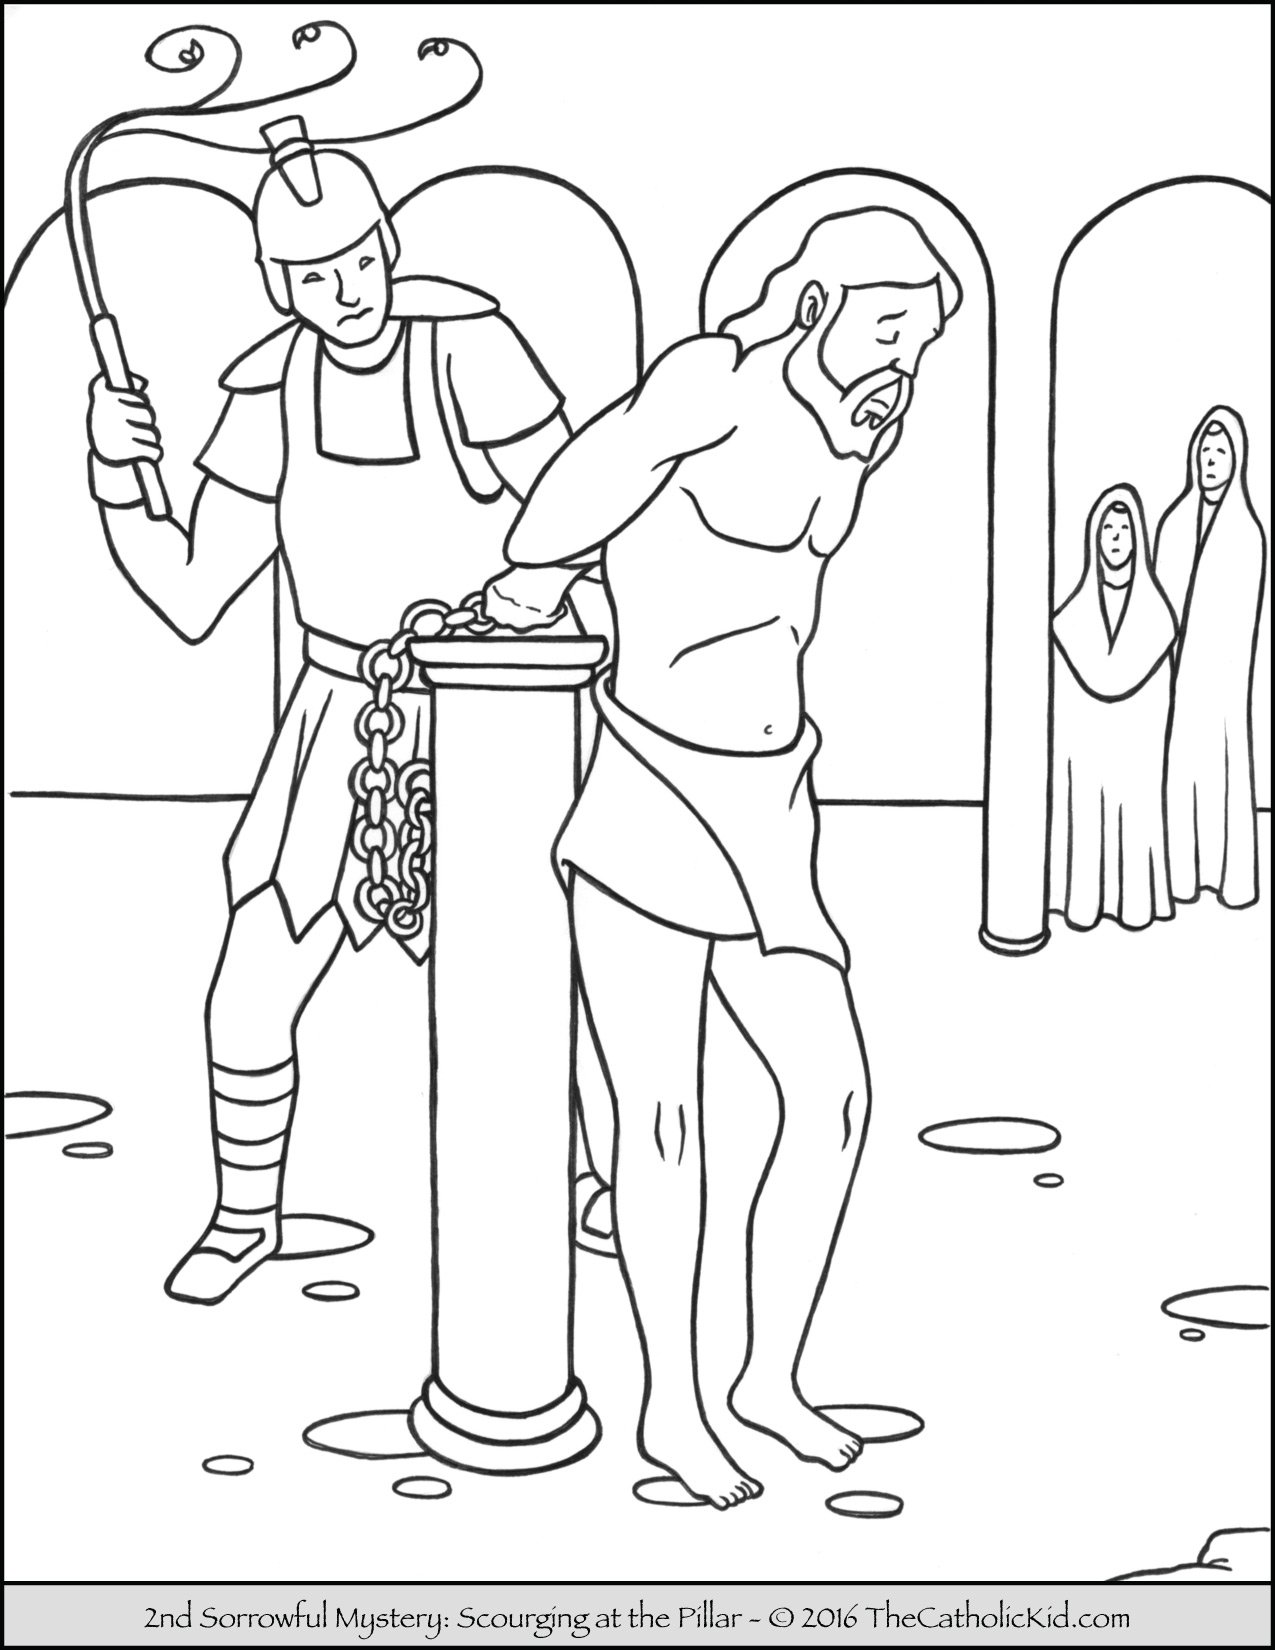 Sorrowful Mysteries Rosary Coloring Pages - The Scourging at the Pillar